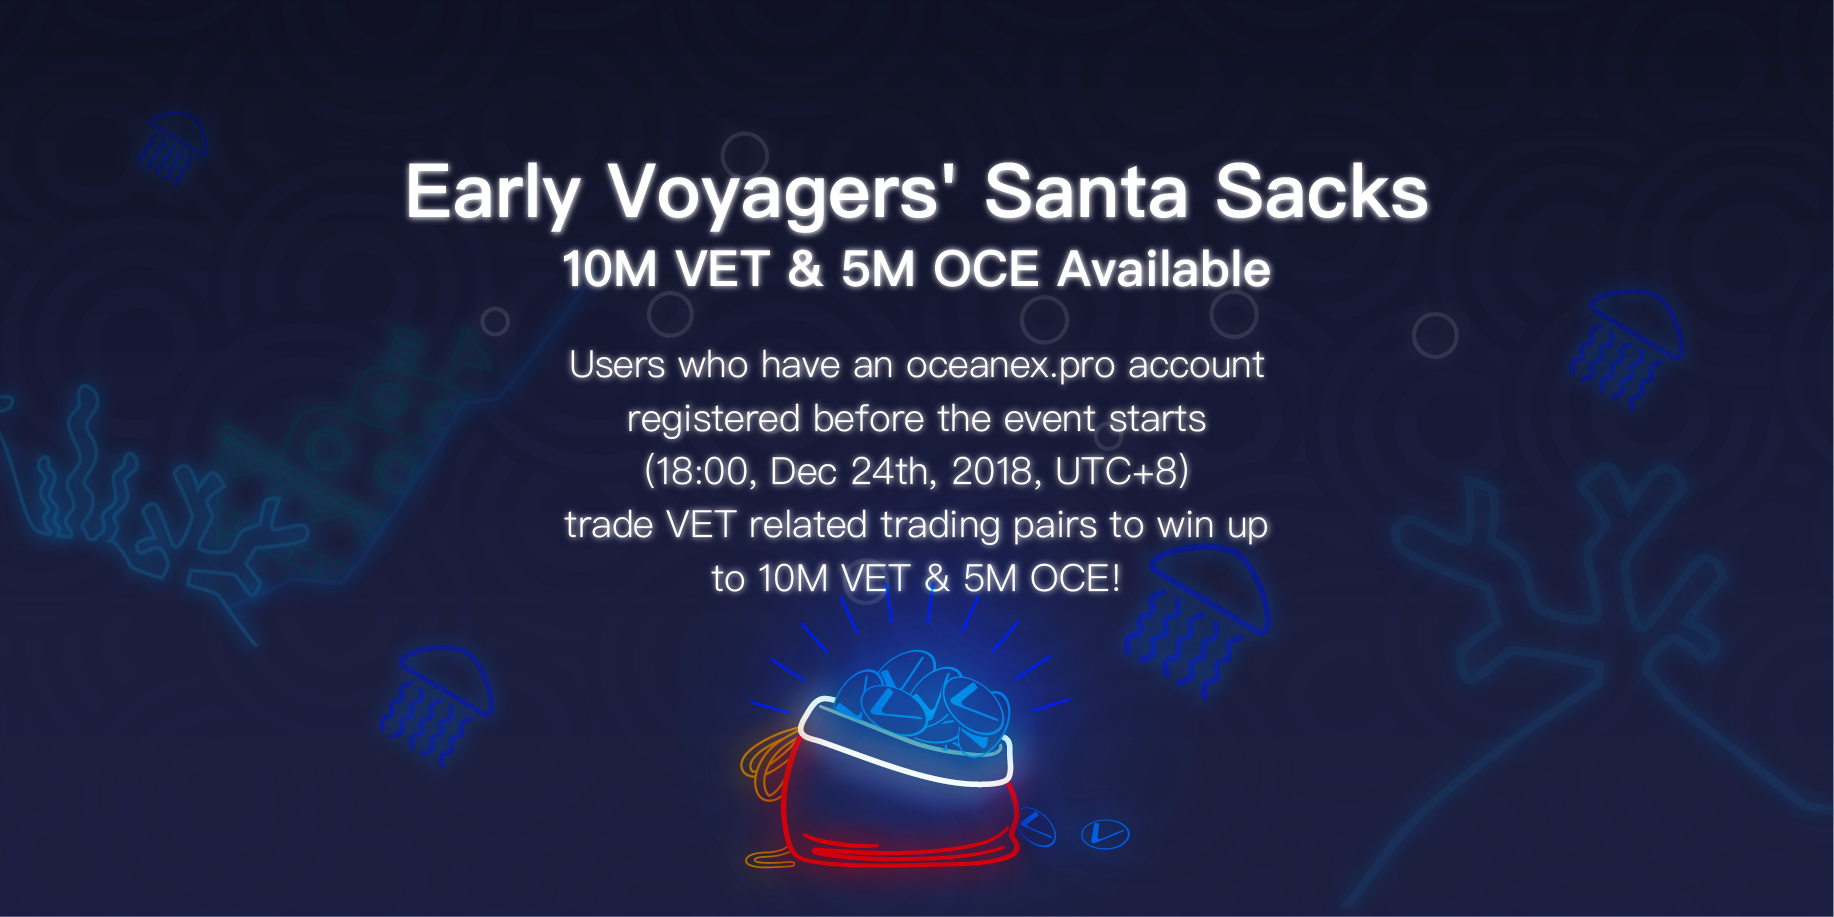 Early_Voyagers__Santa_Sacks.png